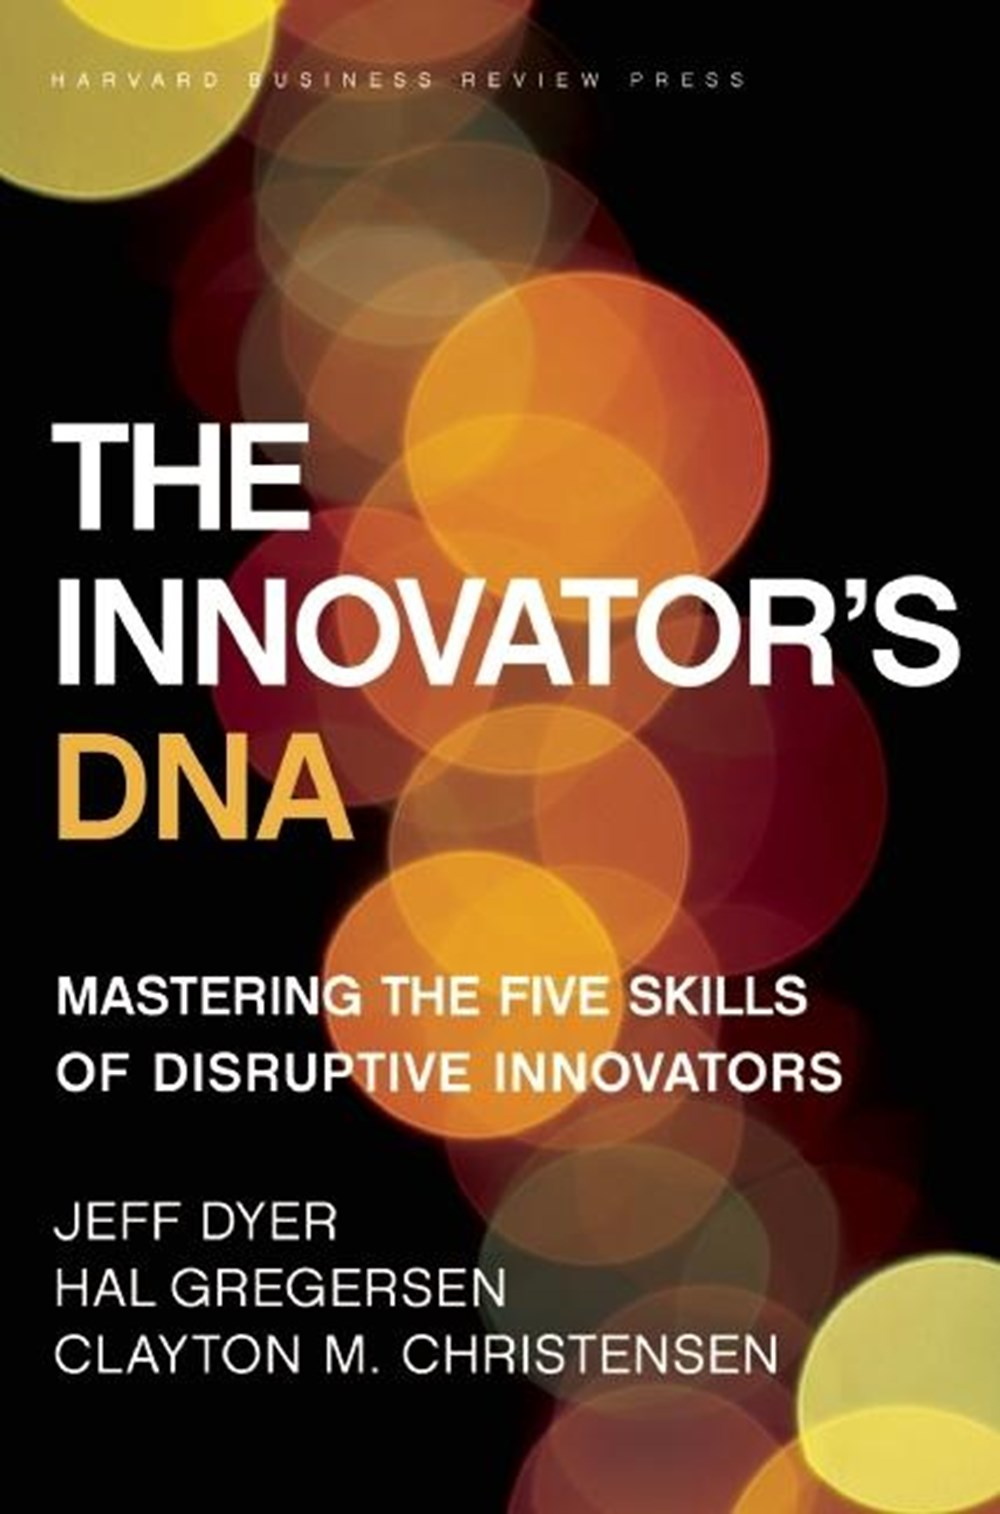 Innovator's DNA Mastering the Five Skills of Disruptive Innovators